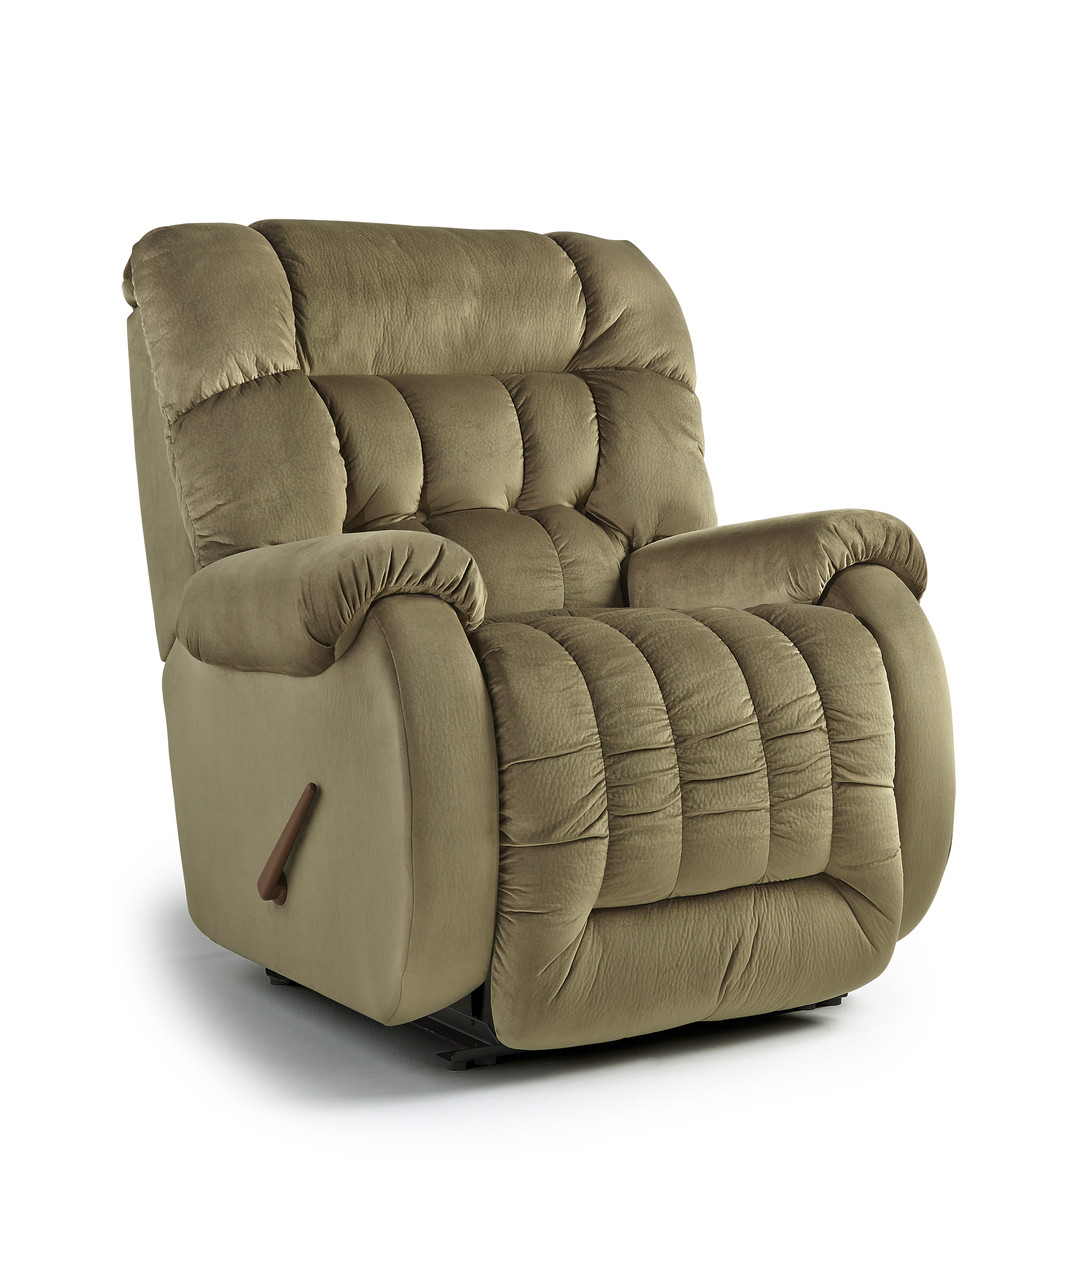 The The Rake Beast Recliner Sold At Rose Brothers Furniture Serving Wilmington And Jacksonville